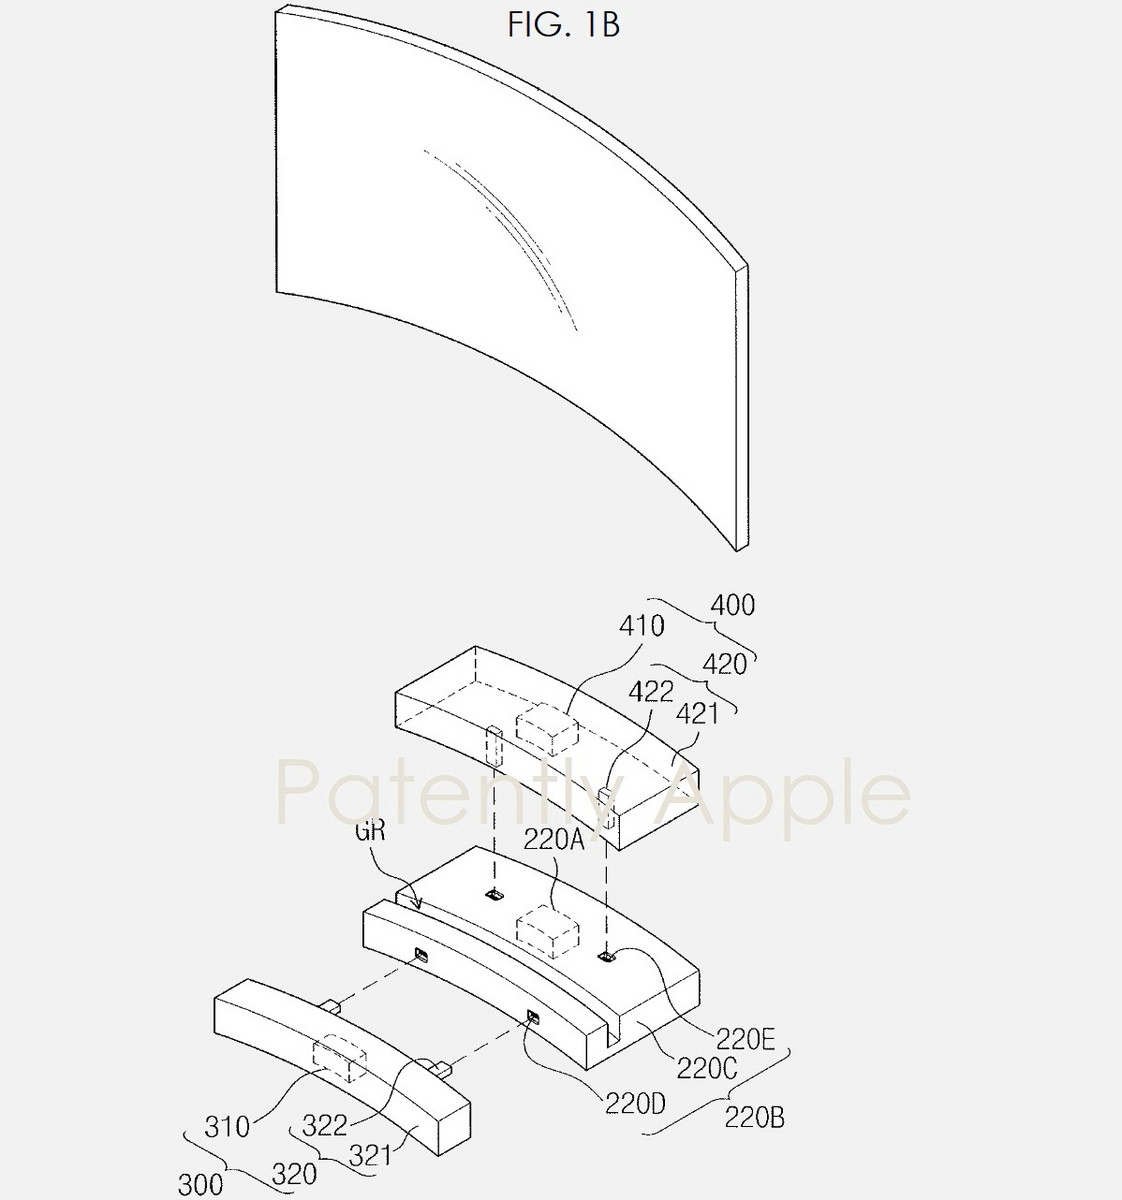 Samsung patents modular TV that turns into an AiO PC